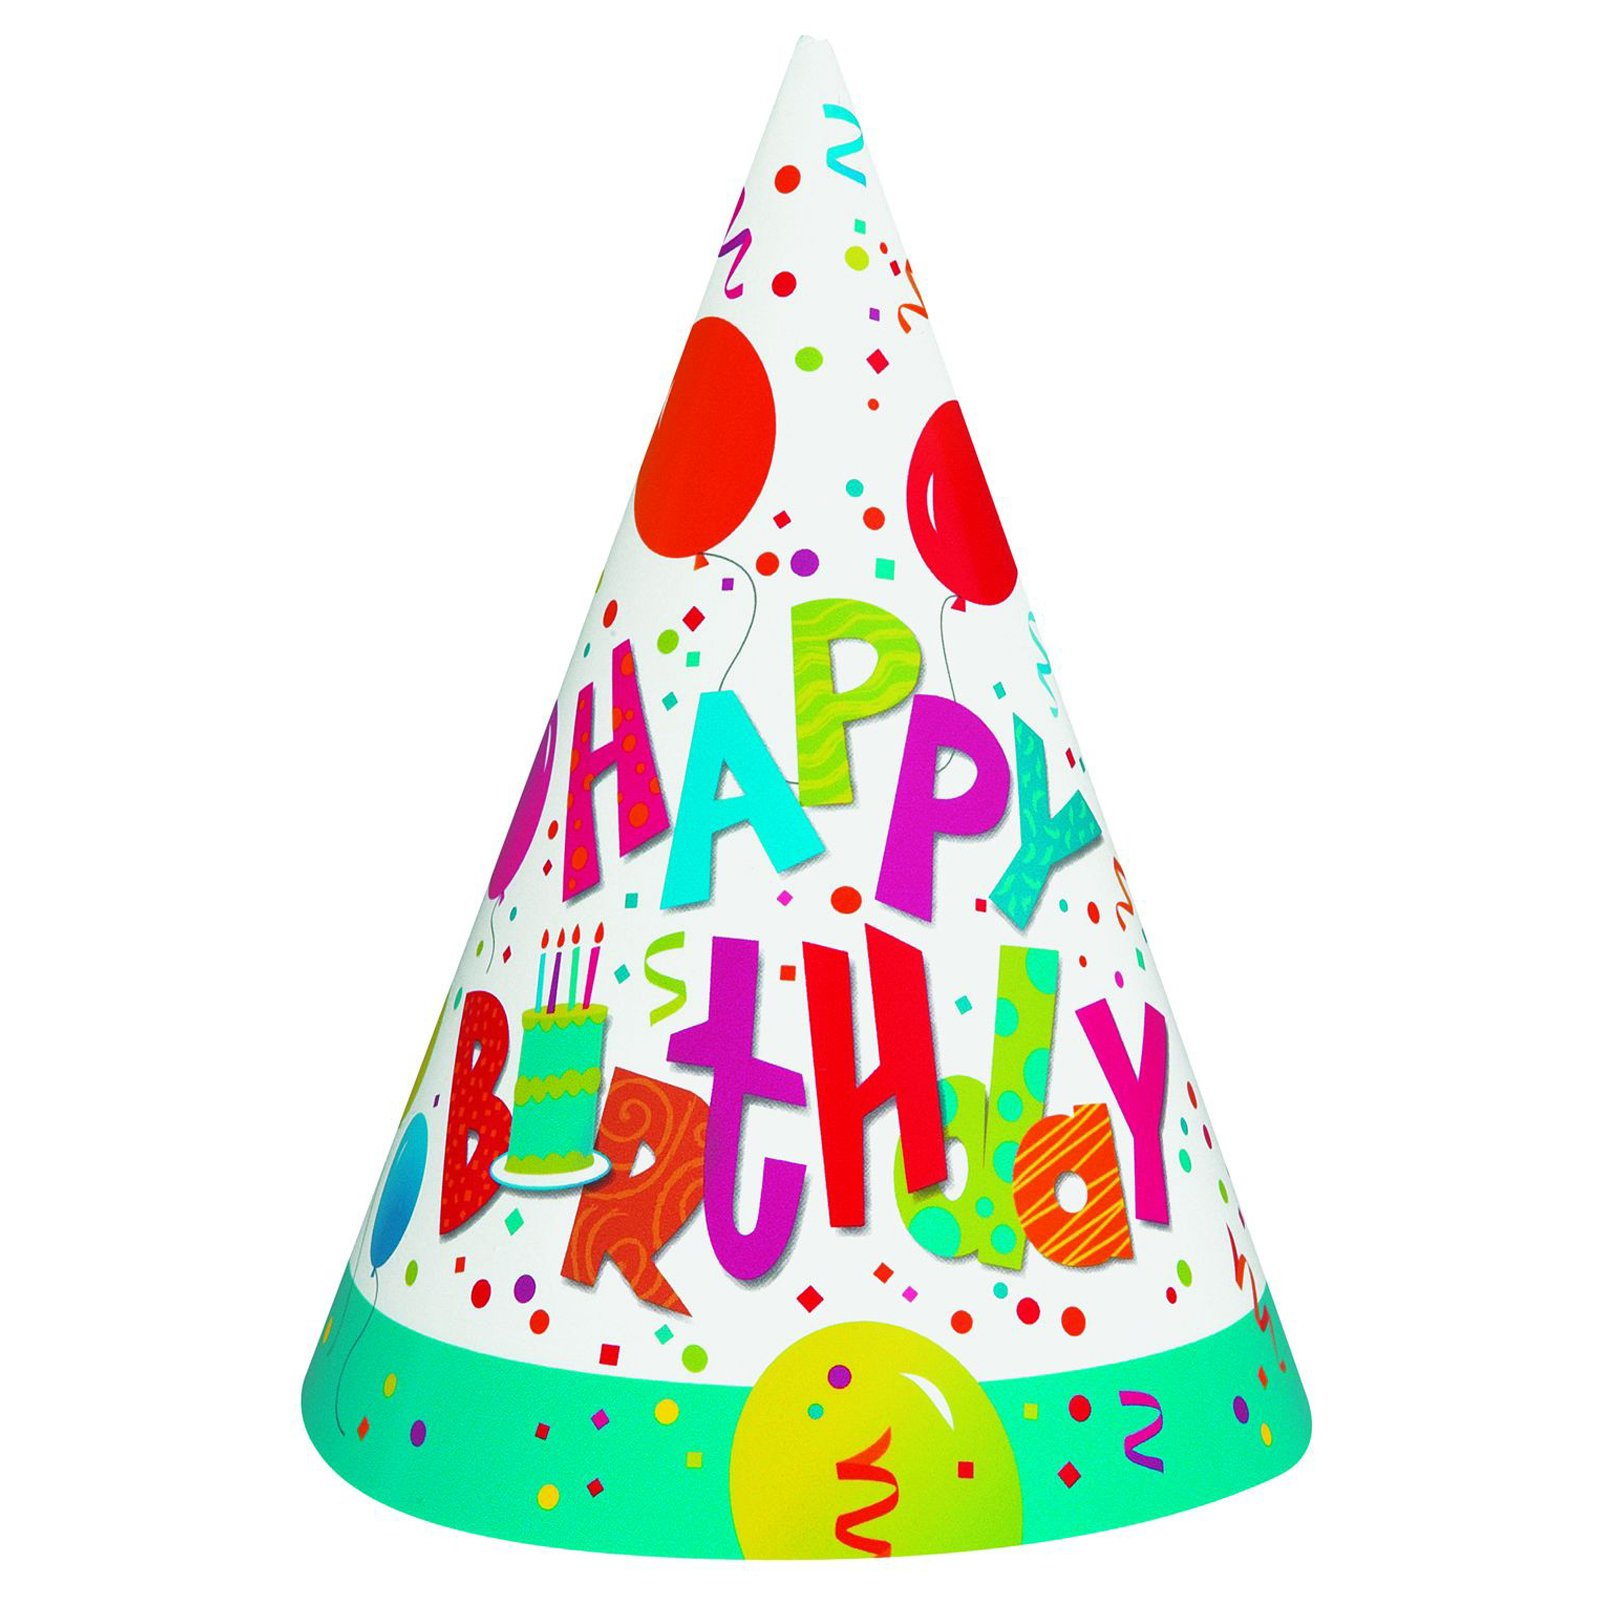 1600x1600 Birthday Hat Transparent Background Free Clipart 2